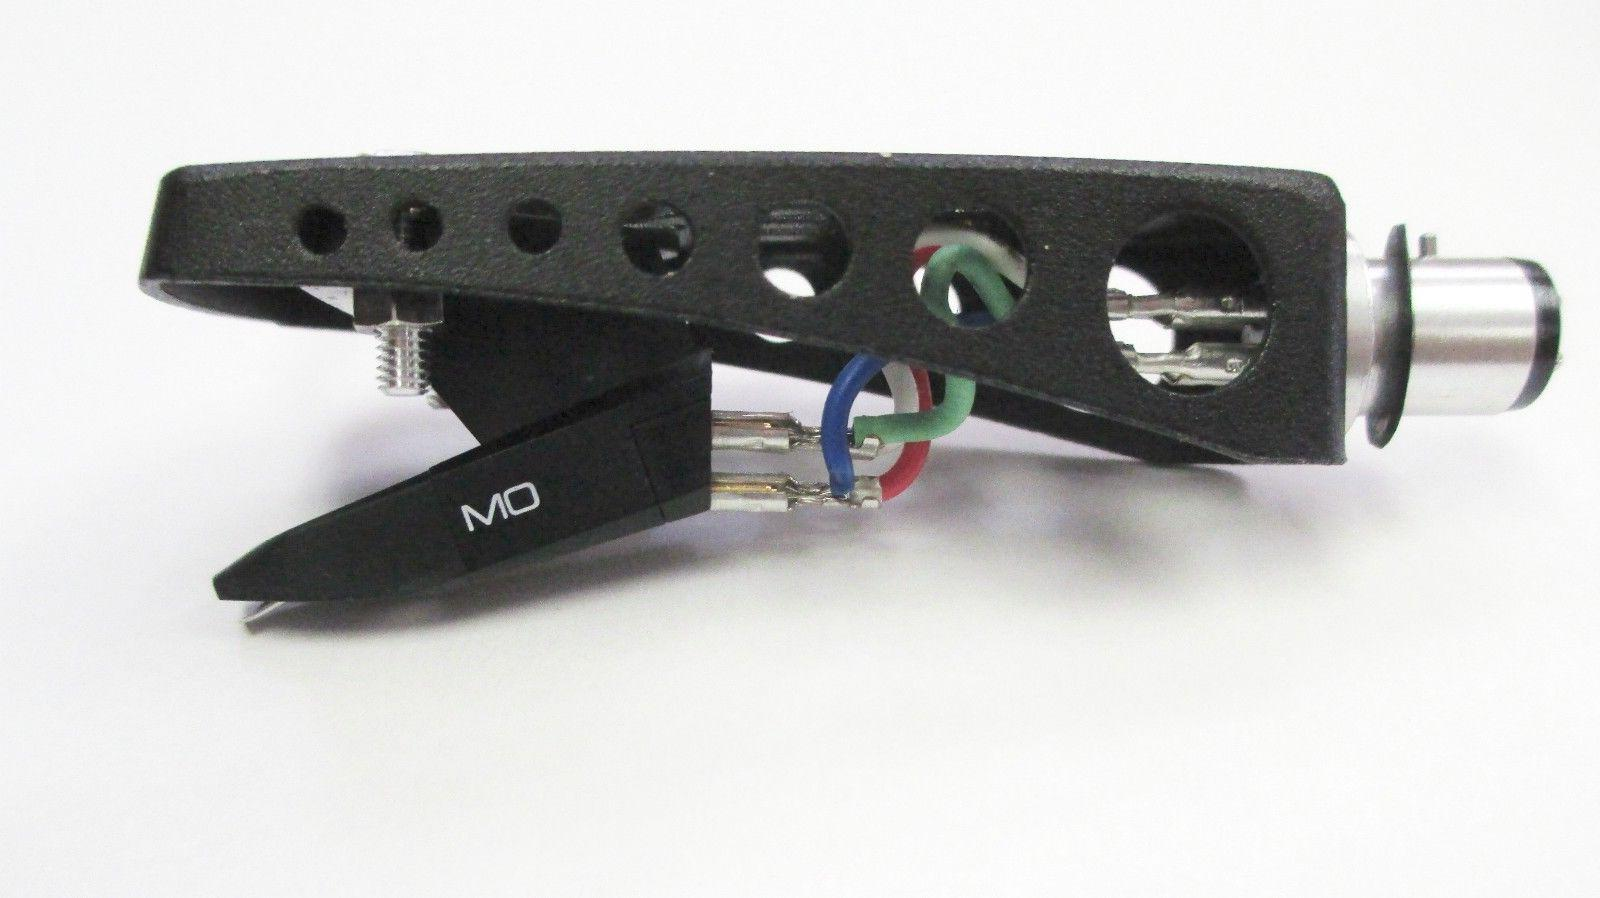 ORTOFON OM 10 ELLIPTICAL HEAD SHELL FOR TECHNICS